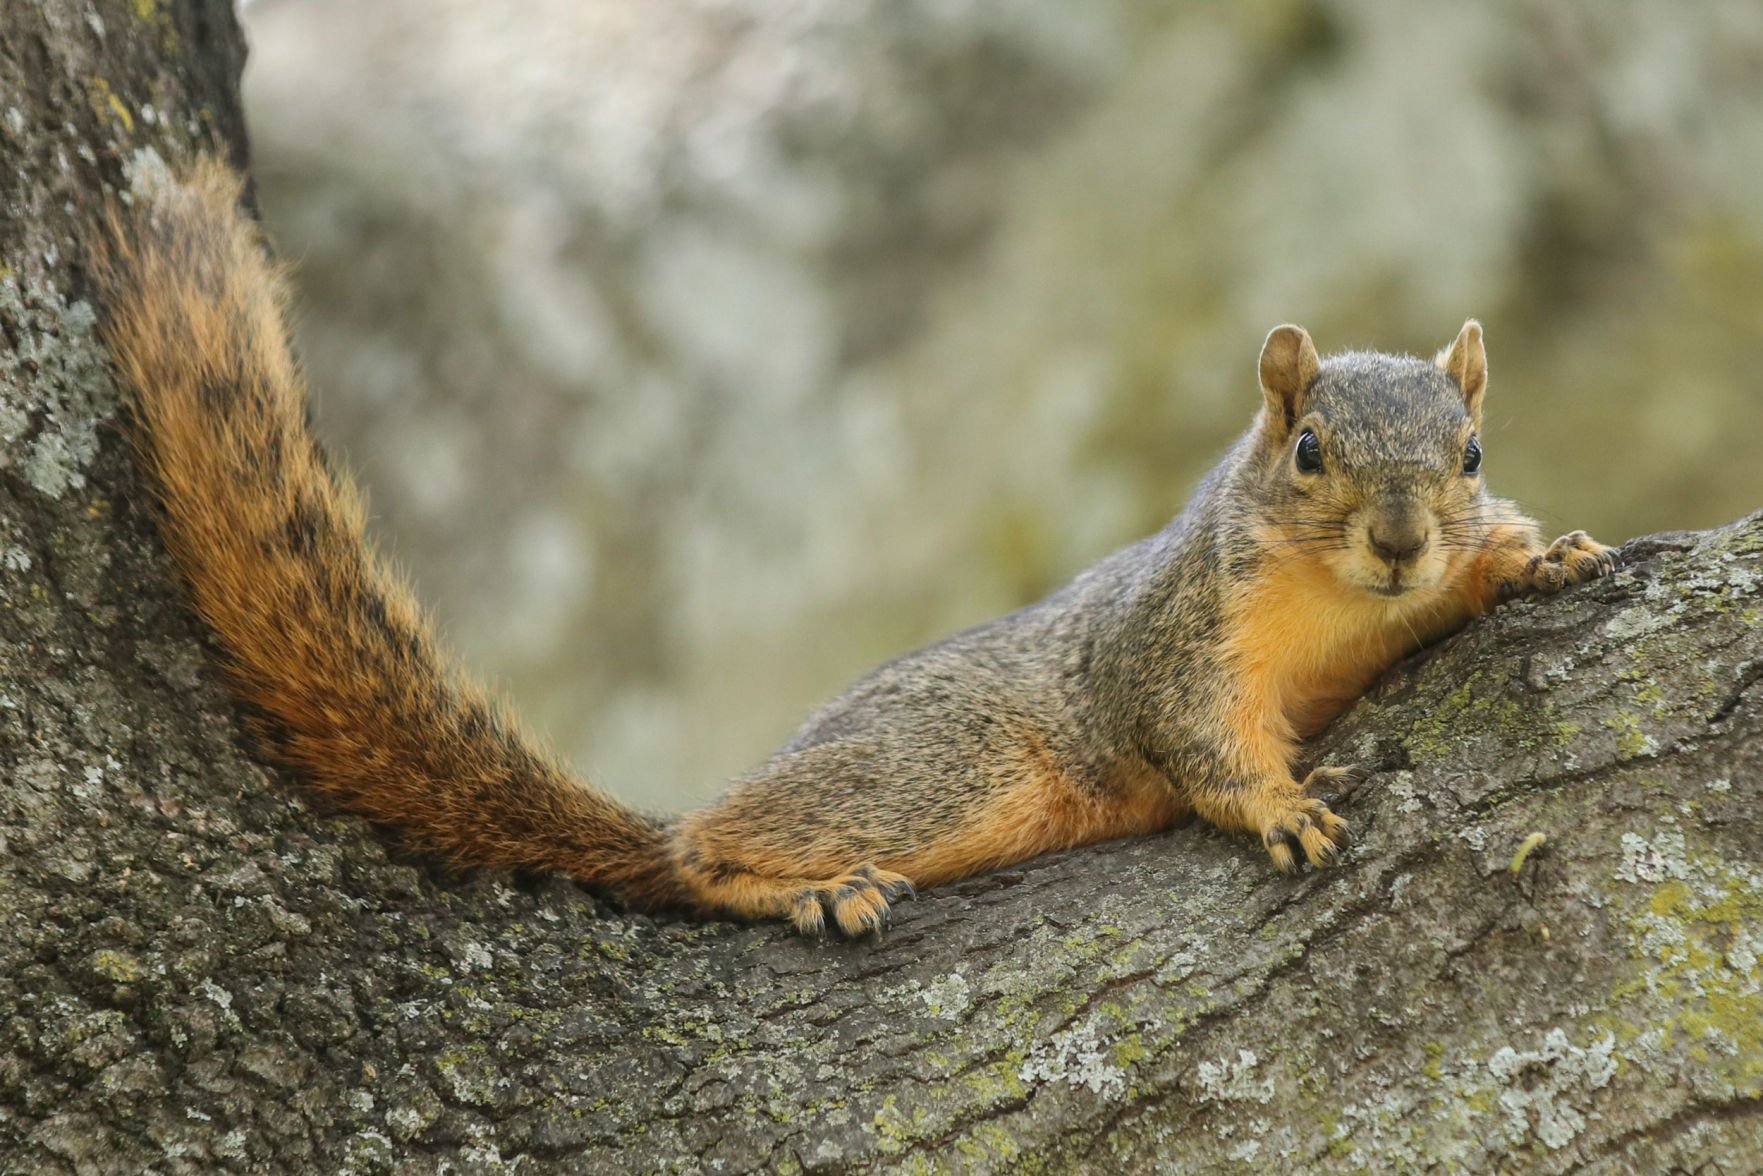 UTA's squirrels: fuzzy friends or feisty foes?